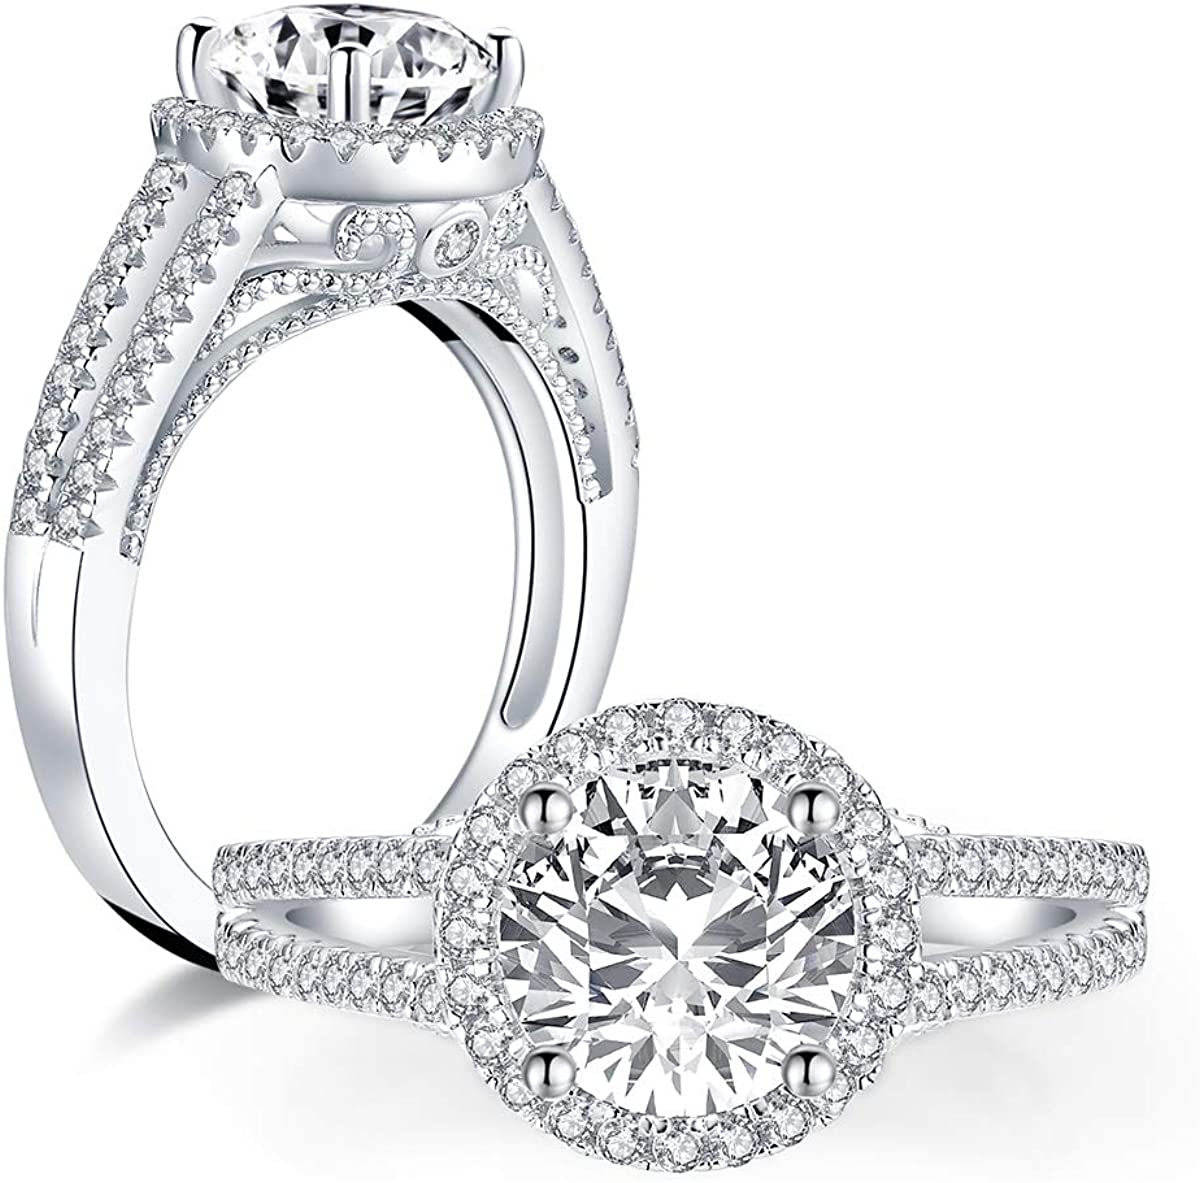 2 Carat Round Halo Bridal half Band 2 Carat CZ Bridal Engagement Ring Halo Made with Cubic Zirconia CZ /& Silver Bridal Set for Her